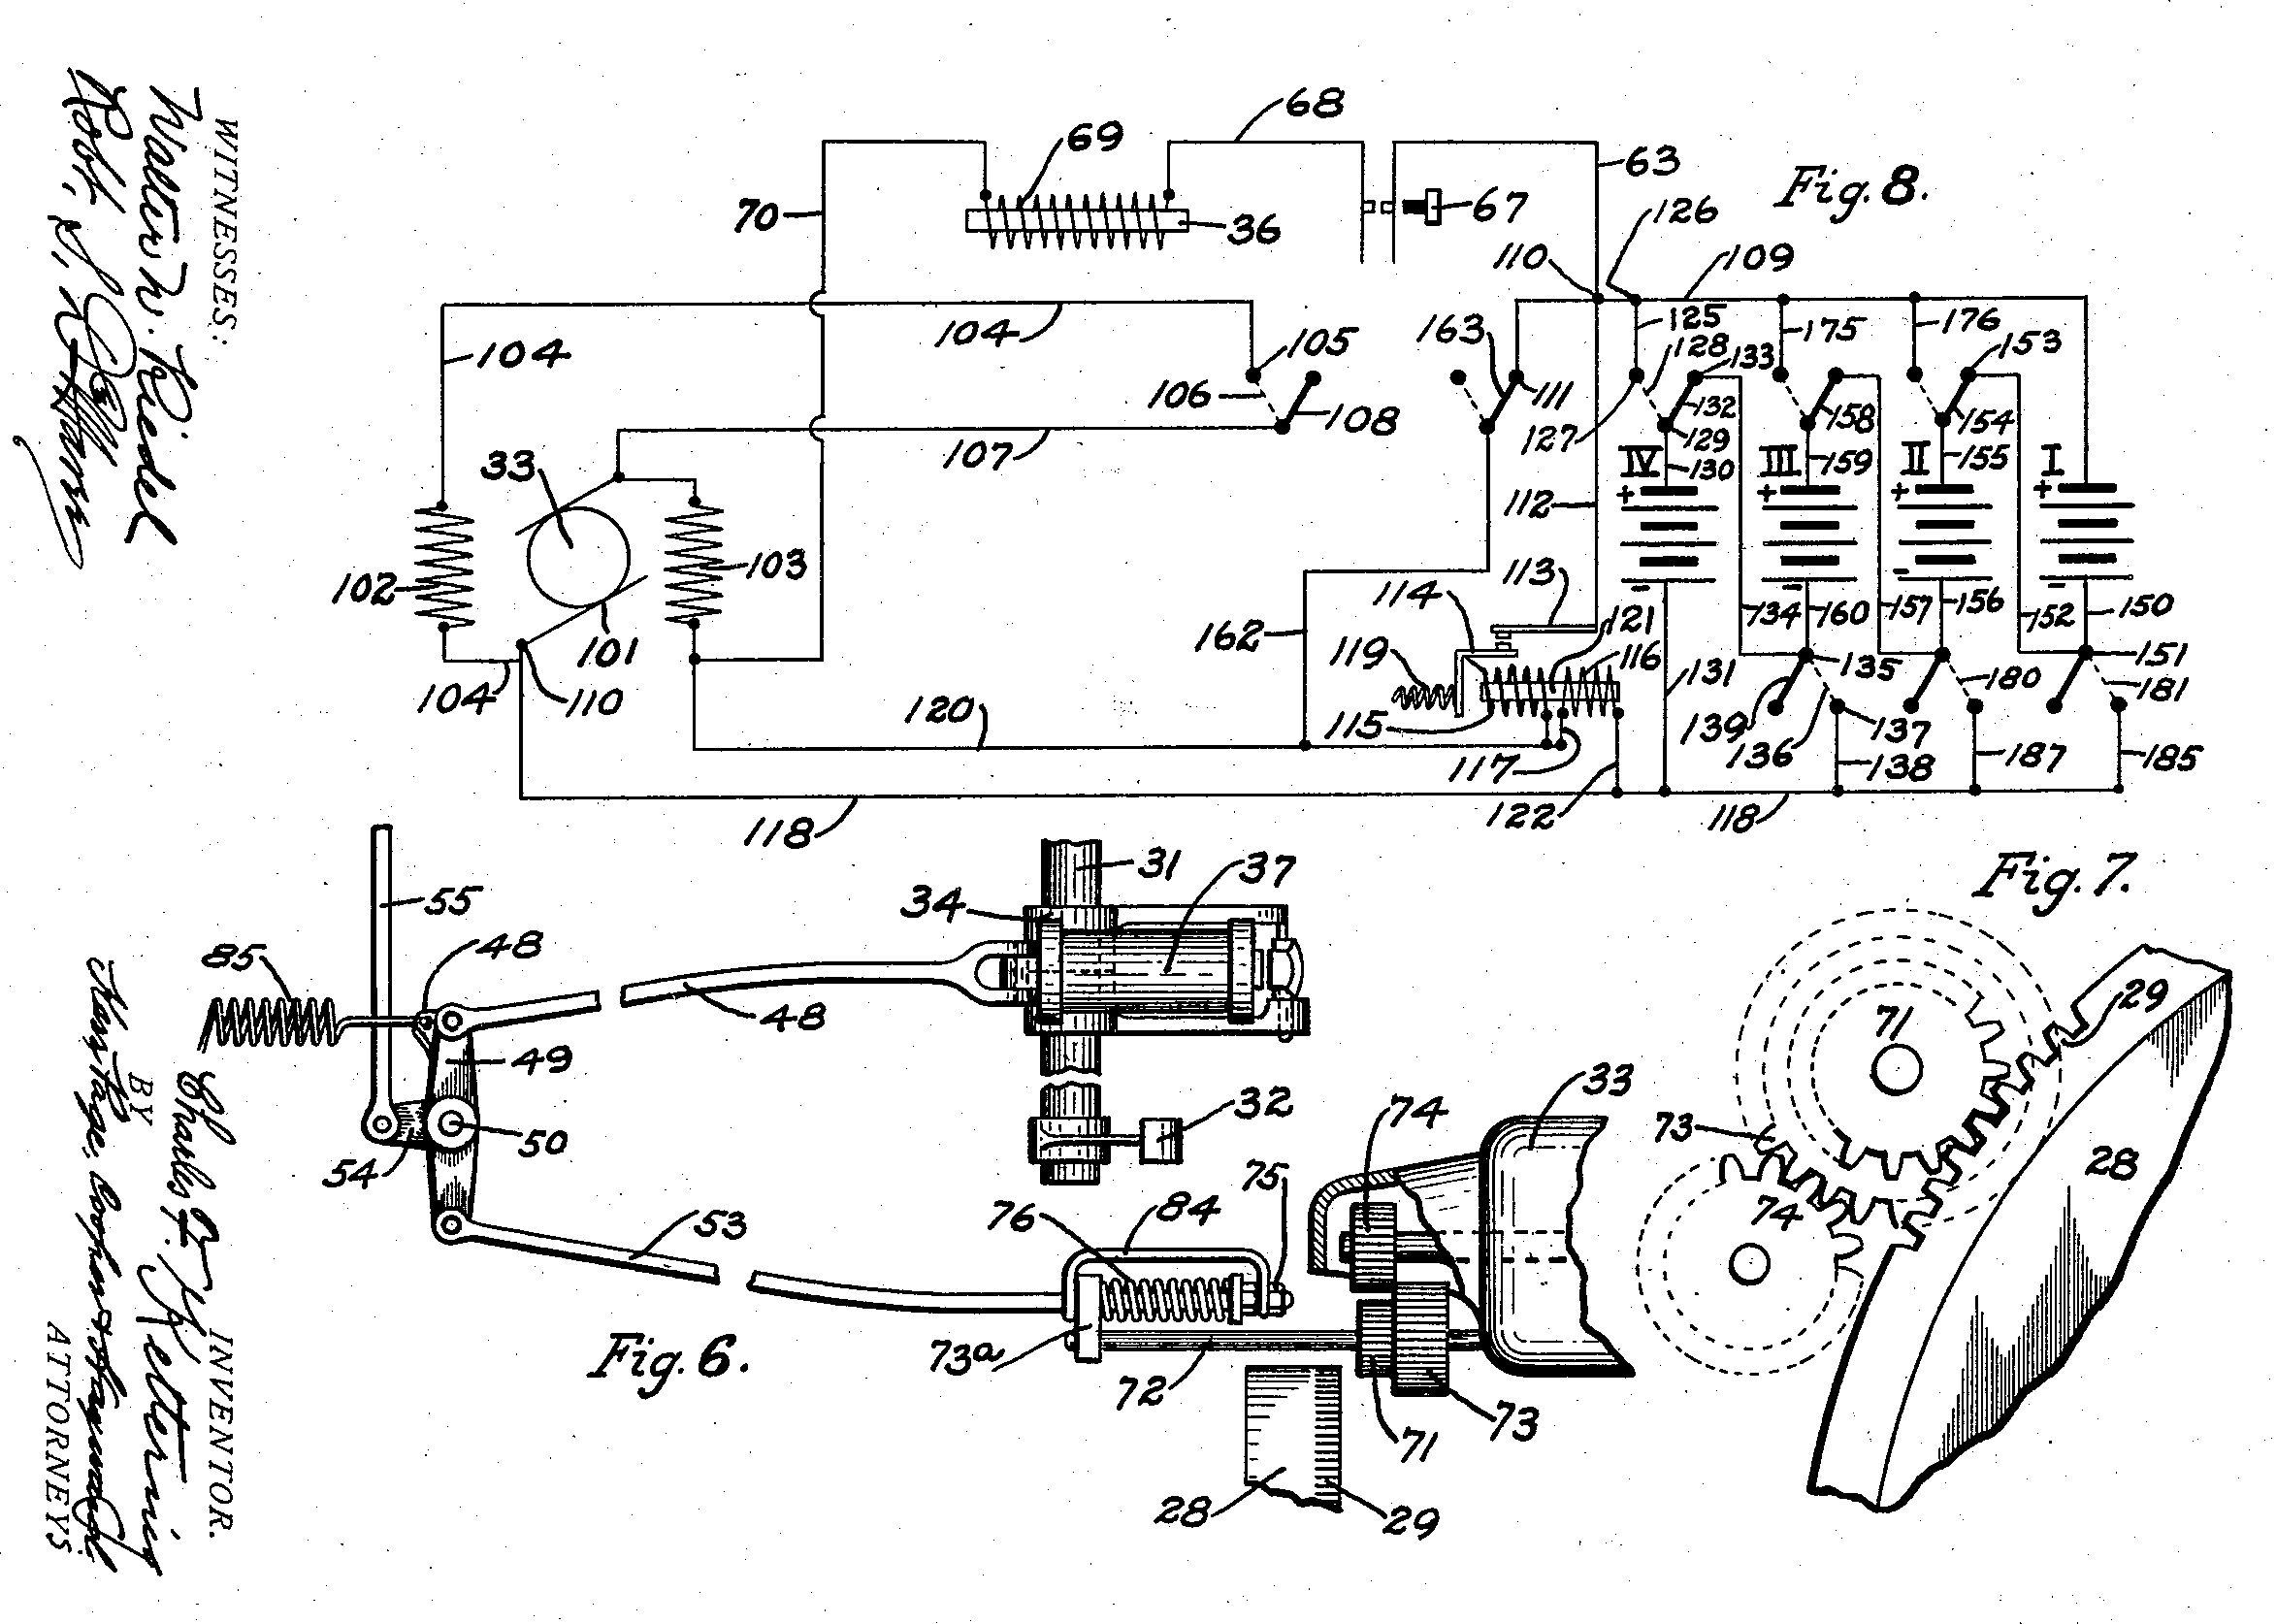 Engine Components Diagram Flarestat Model 100 Wiring